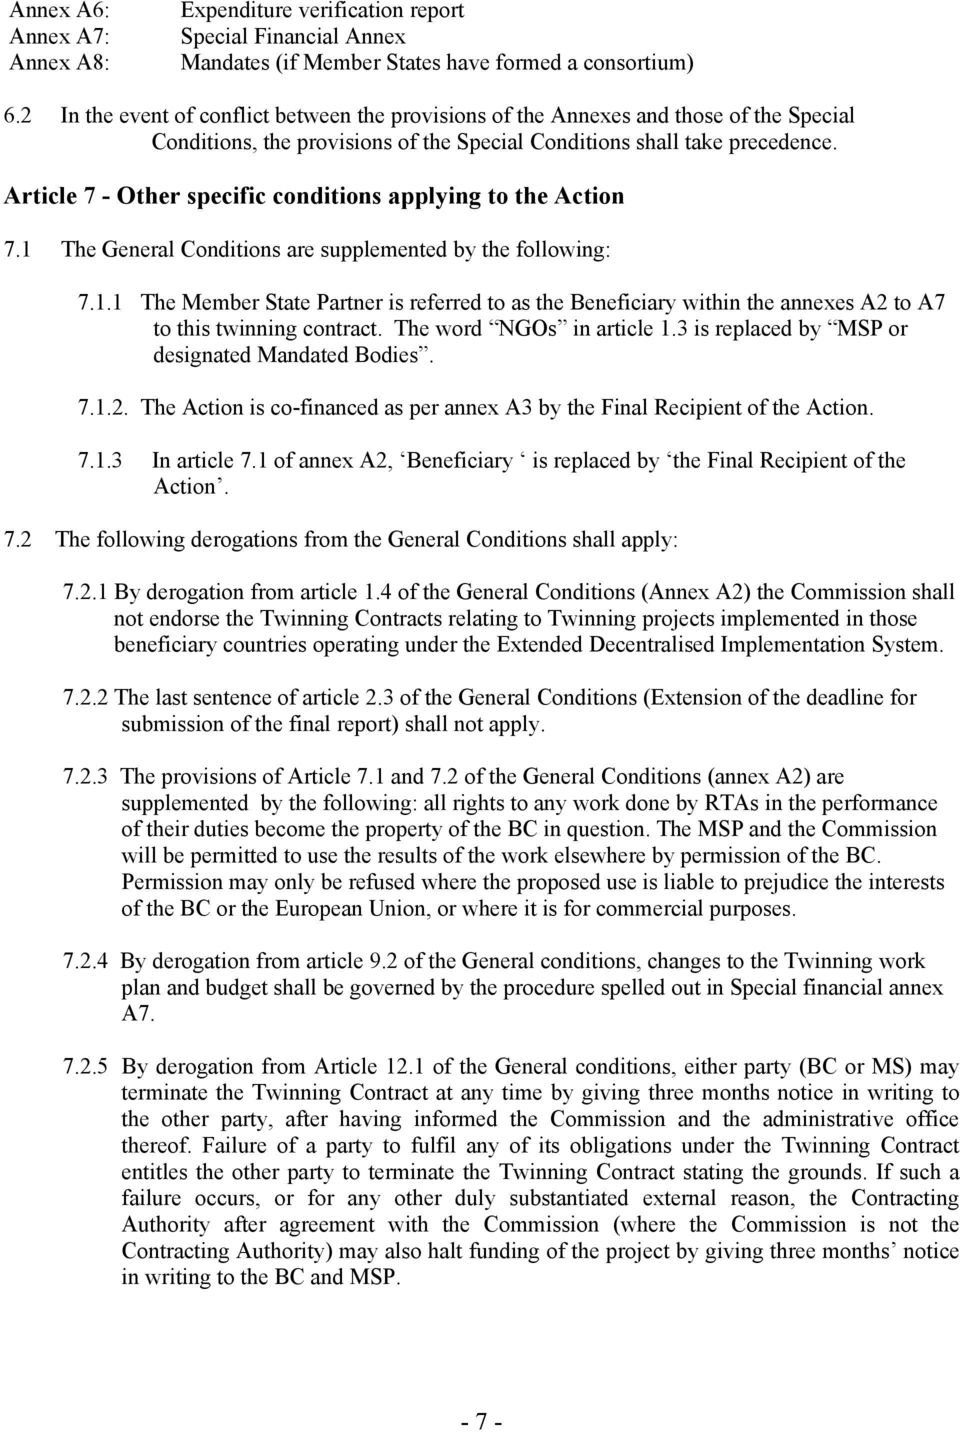 Article 7 - Other specific conditions applying to the Action 7.1 The General Conditions are supplemented by the following: 7.1.1 The Member State Partner is referred to as the Beneficiary within the annexes A2 to A7 to this twinning contract.